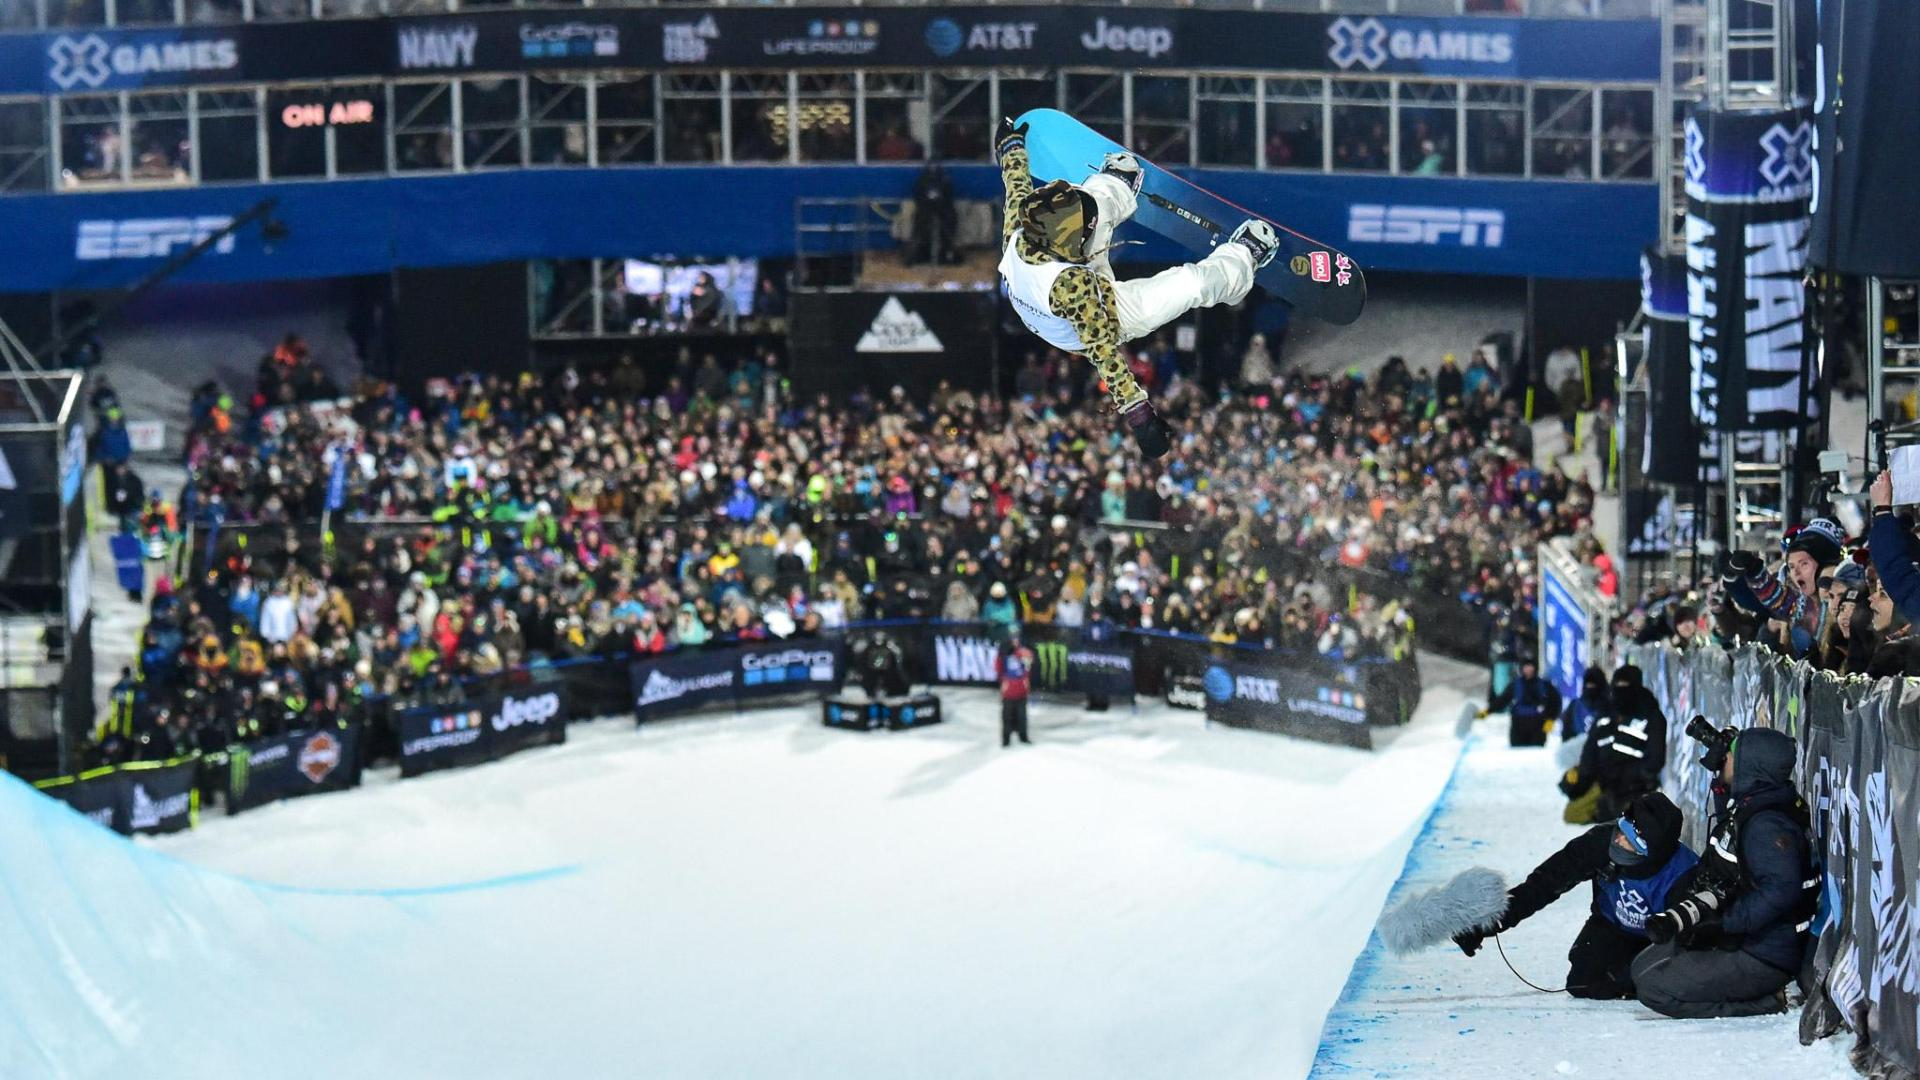 X Games and action sports video.